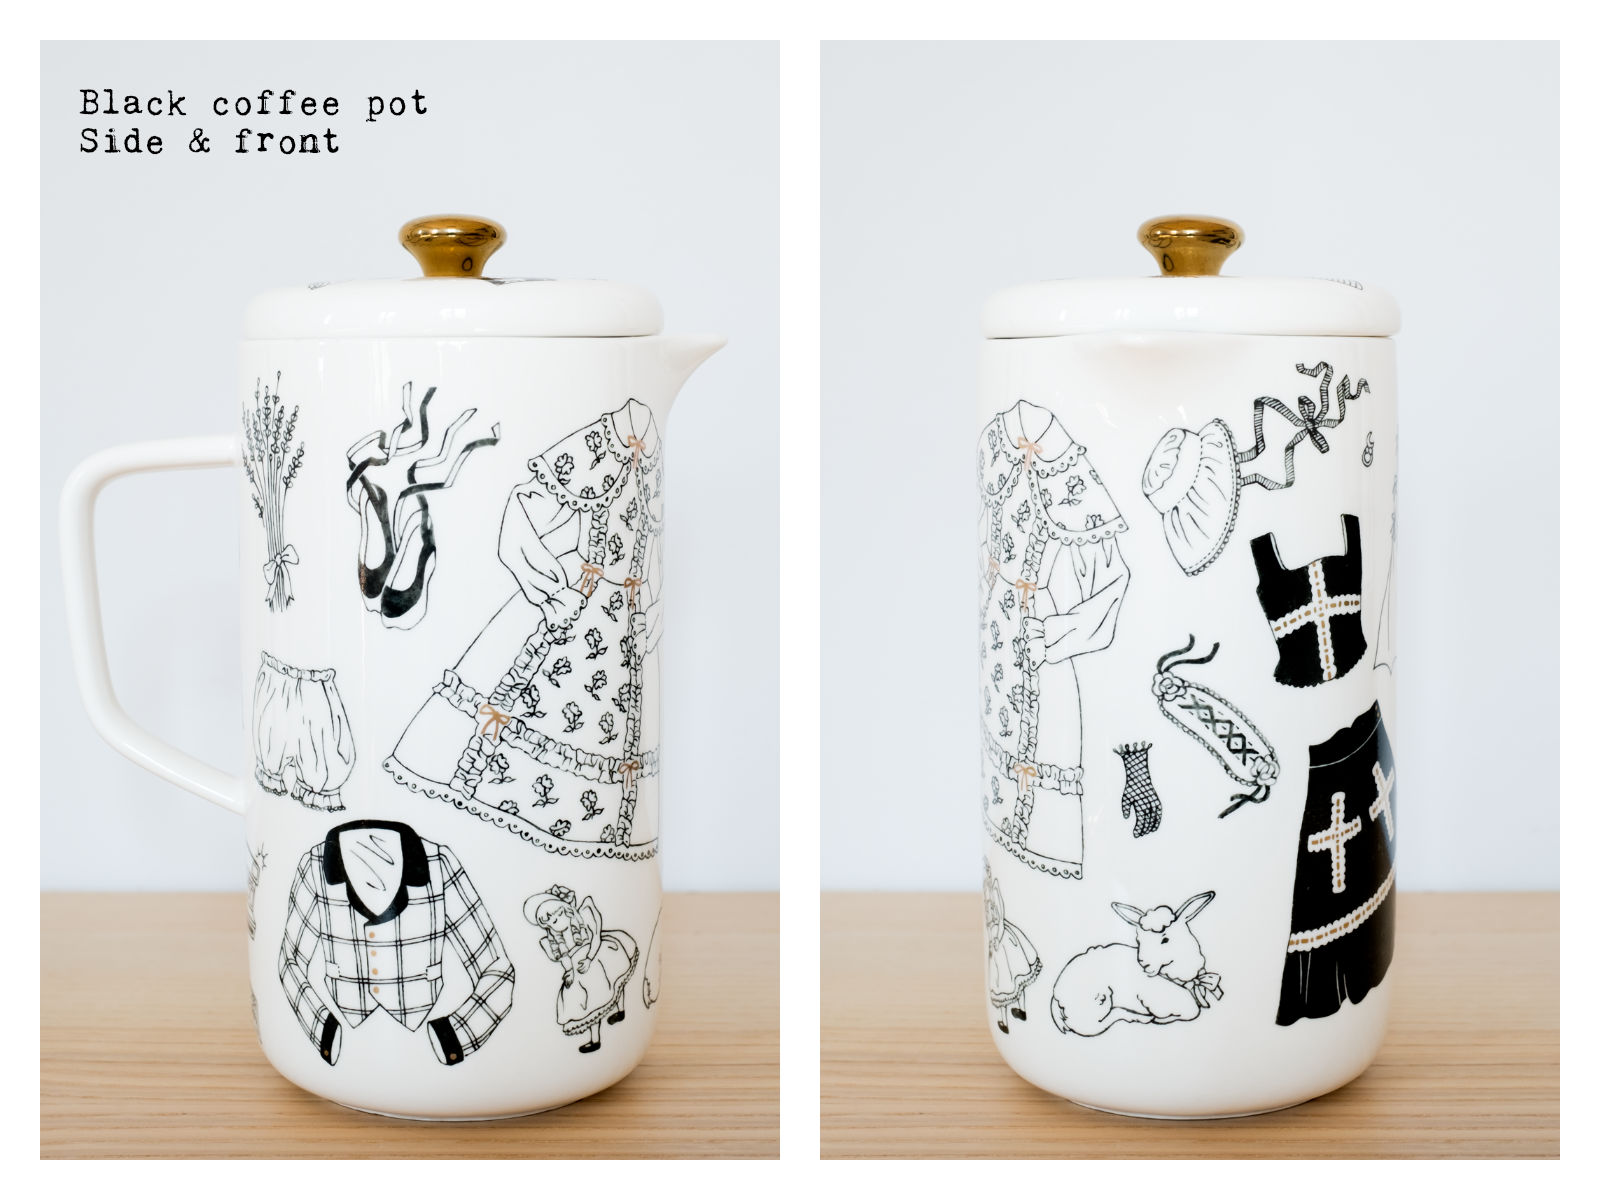 "Side & front of a black coffee pot from ""Oldschool Lolita"", a collection of painted porcelains by messalyn."